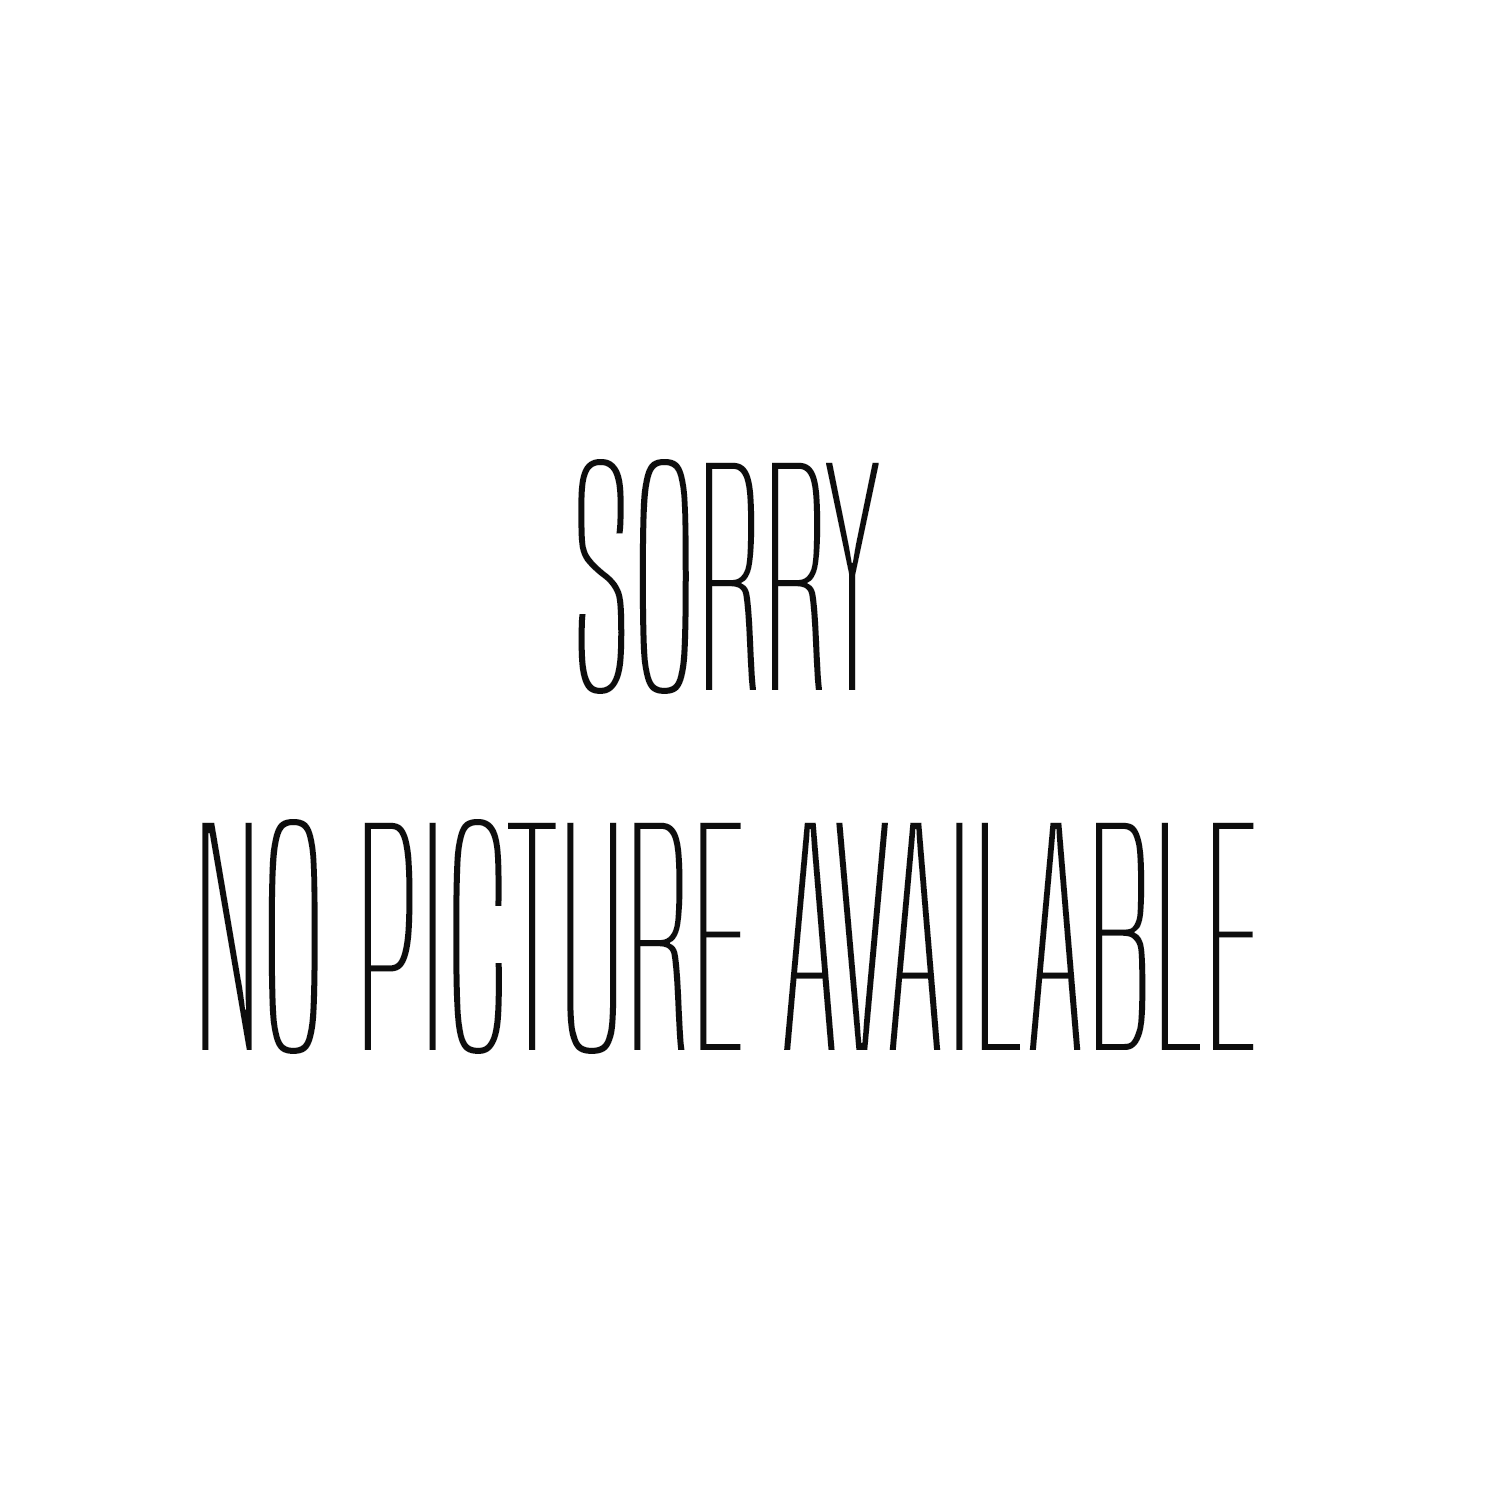 Cut The Funky Record 2 Scratch Vinyl by DJ Suspect